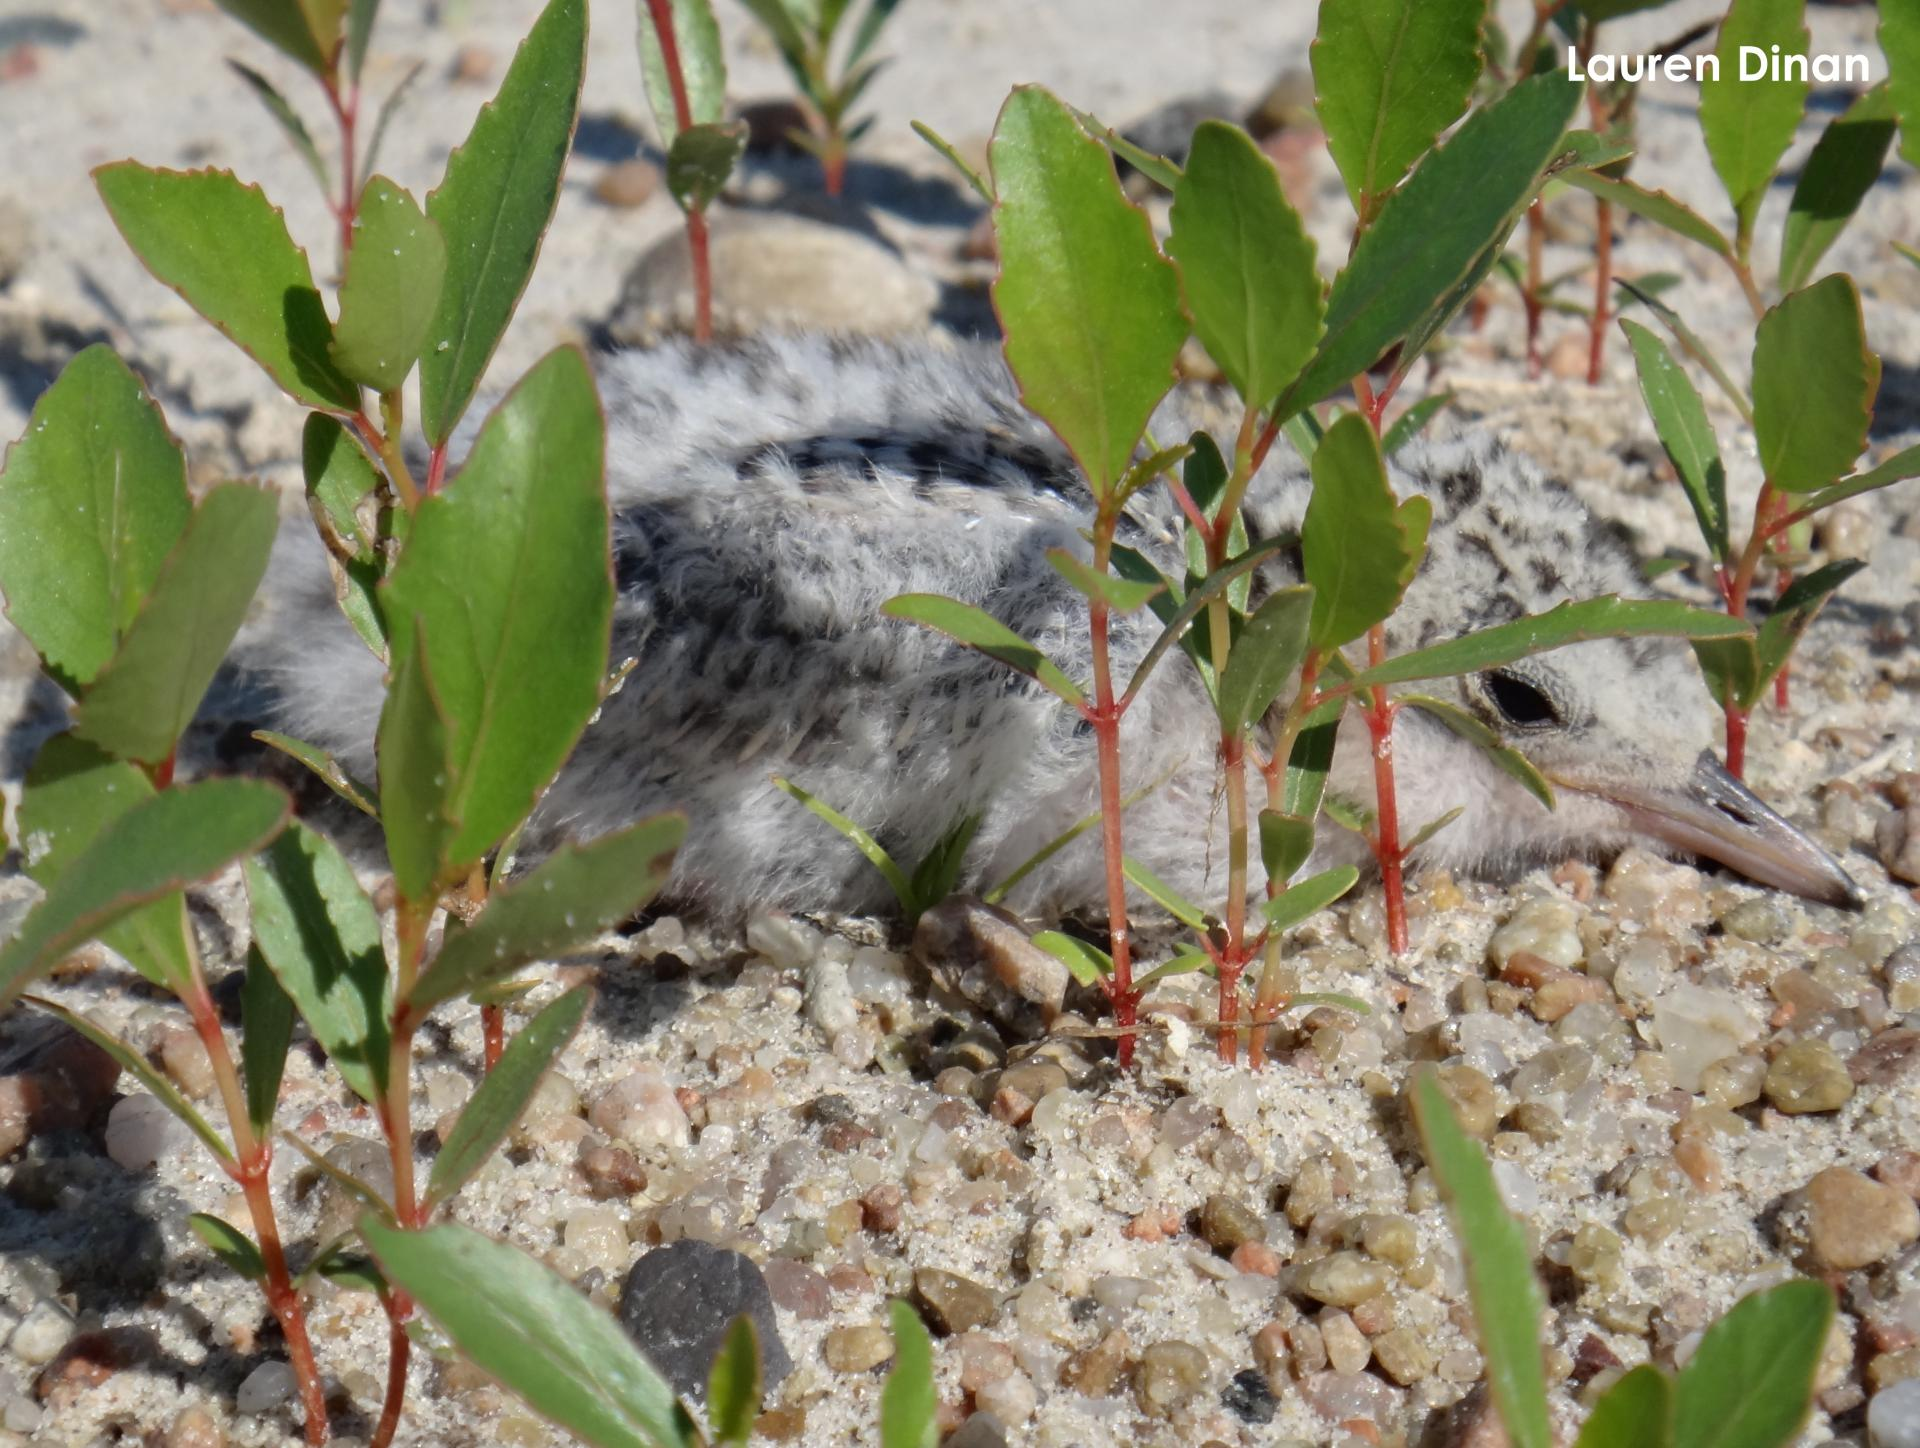 Tern chick hiding in the vegetation